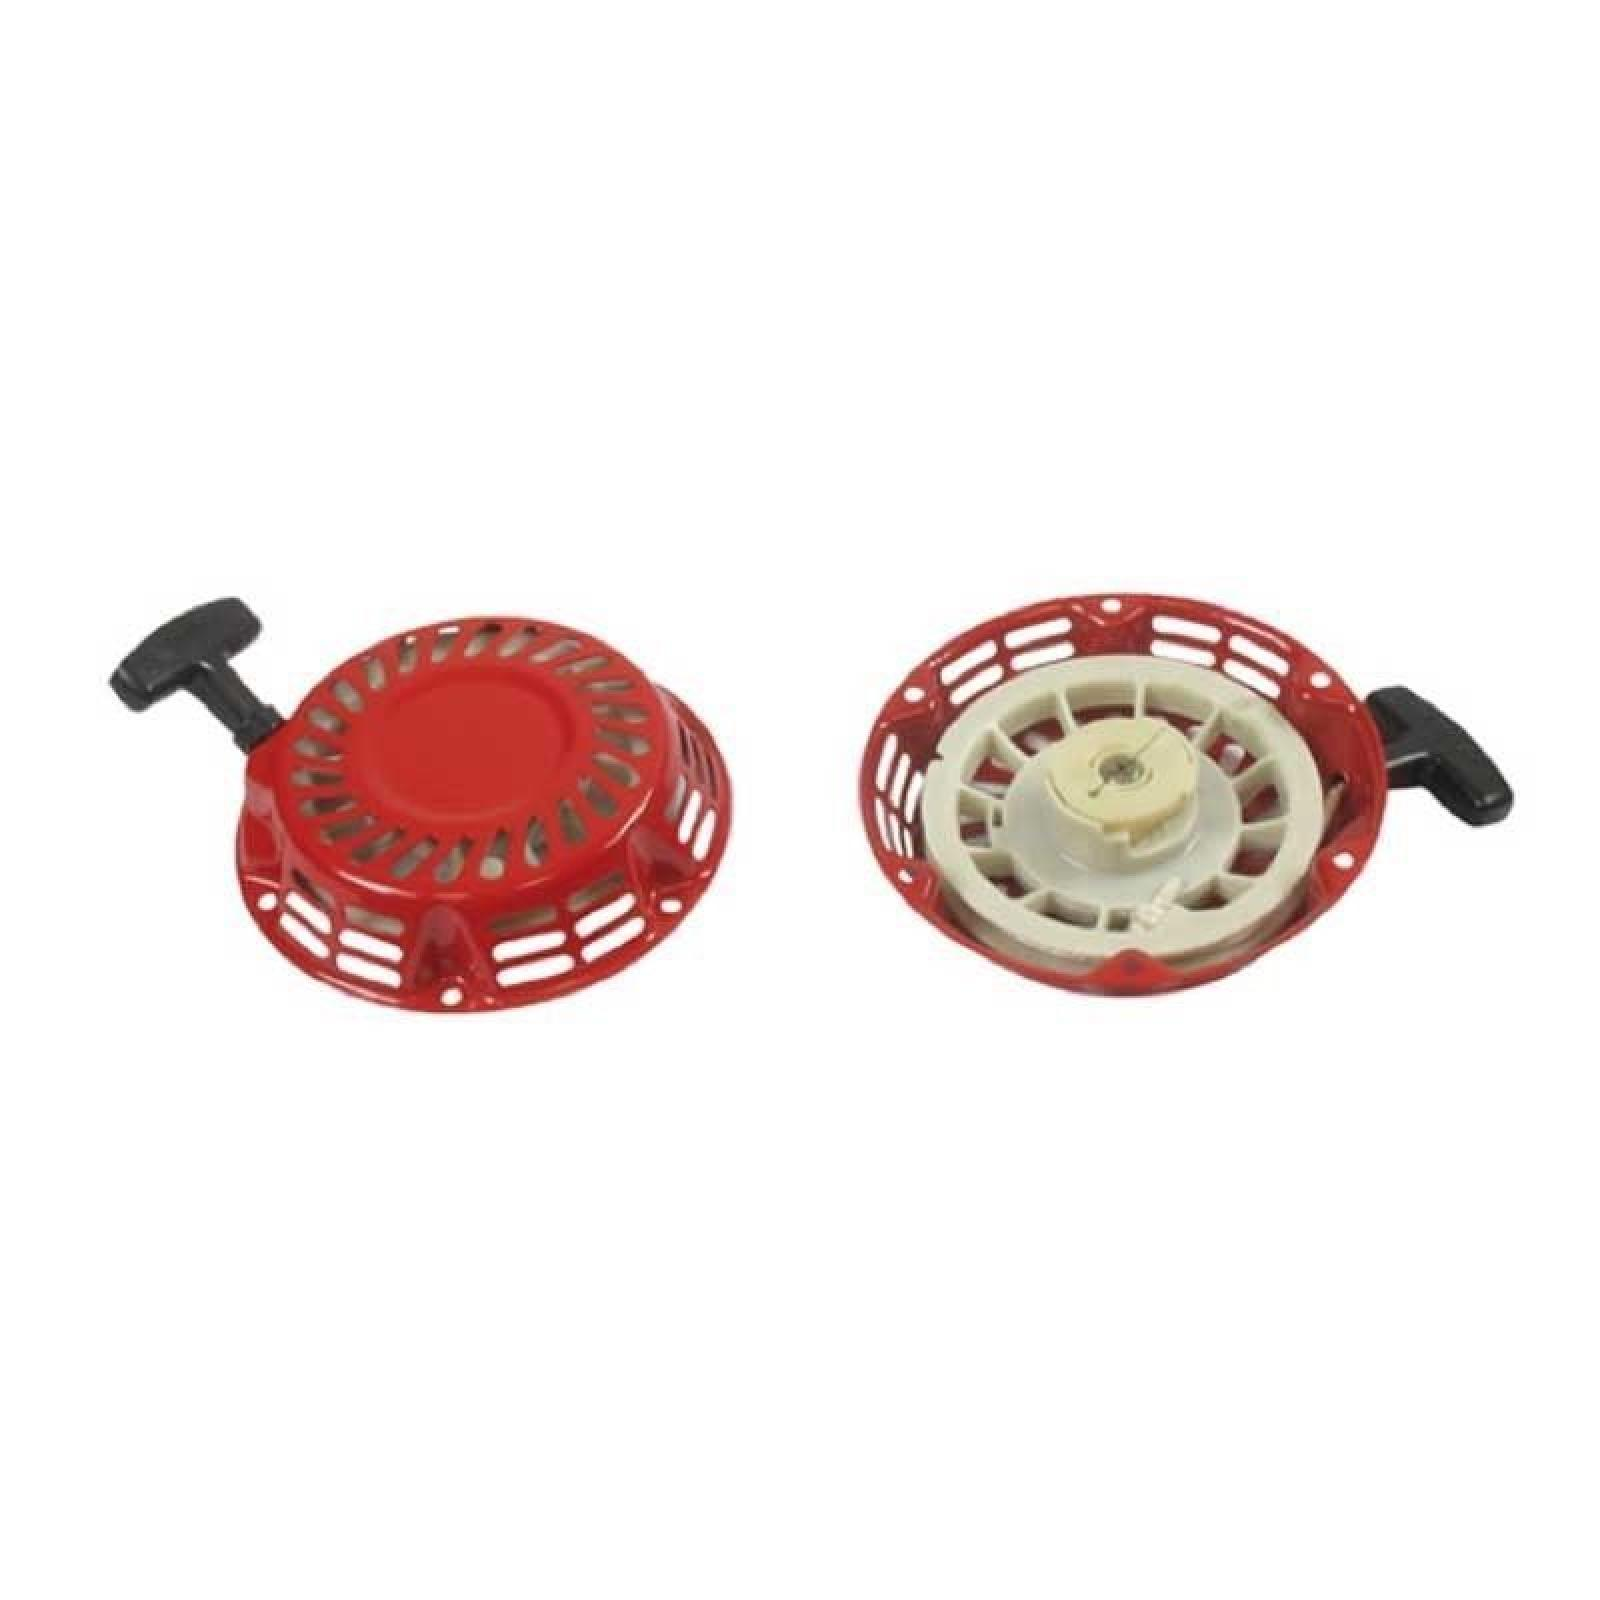 Recoil Starter for Honda GX120,GX160,GX200 (Plastic pawls) part#